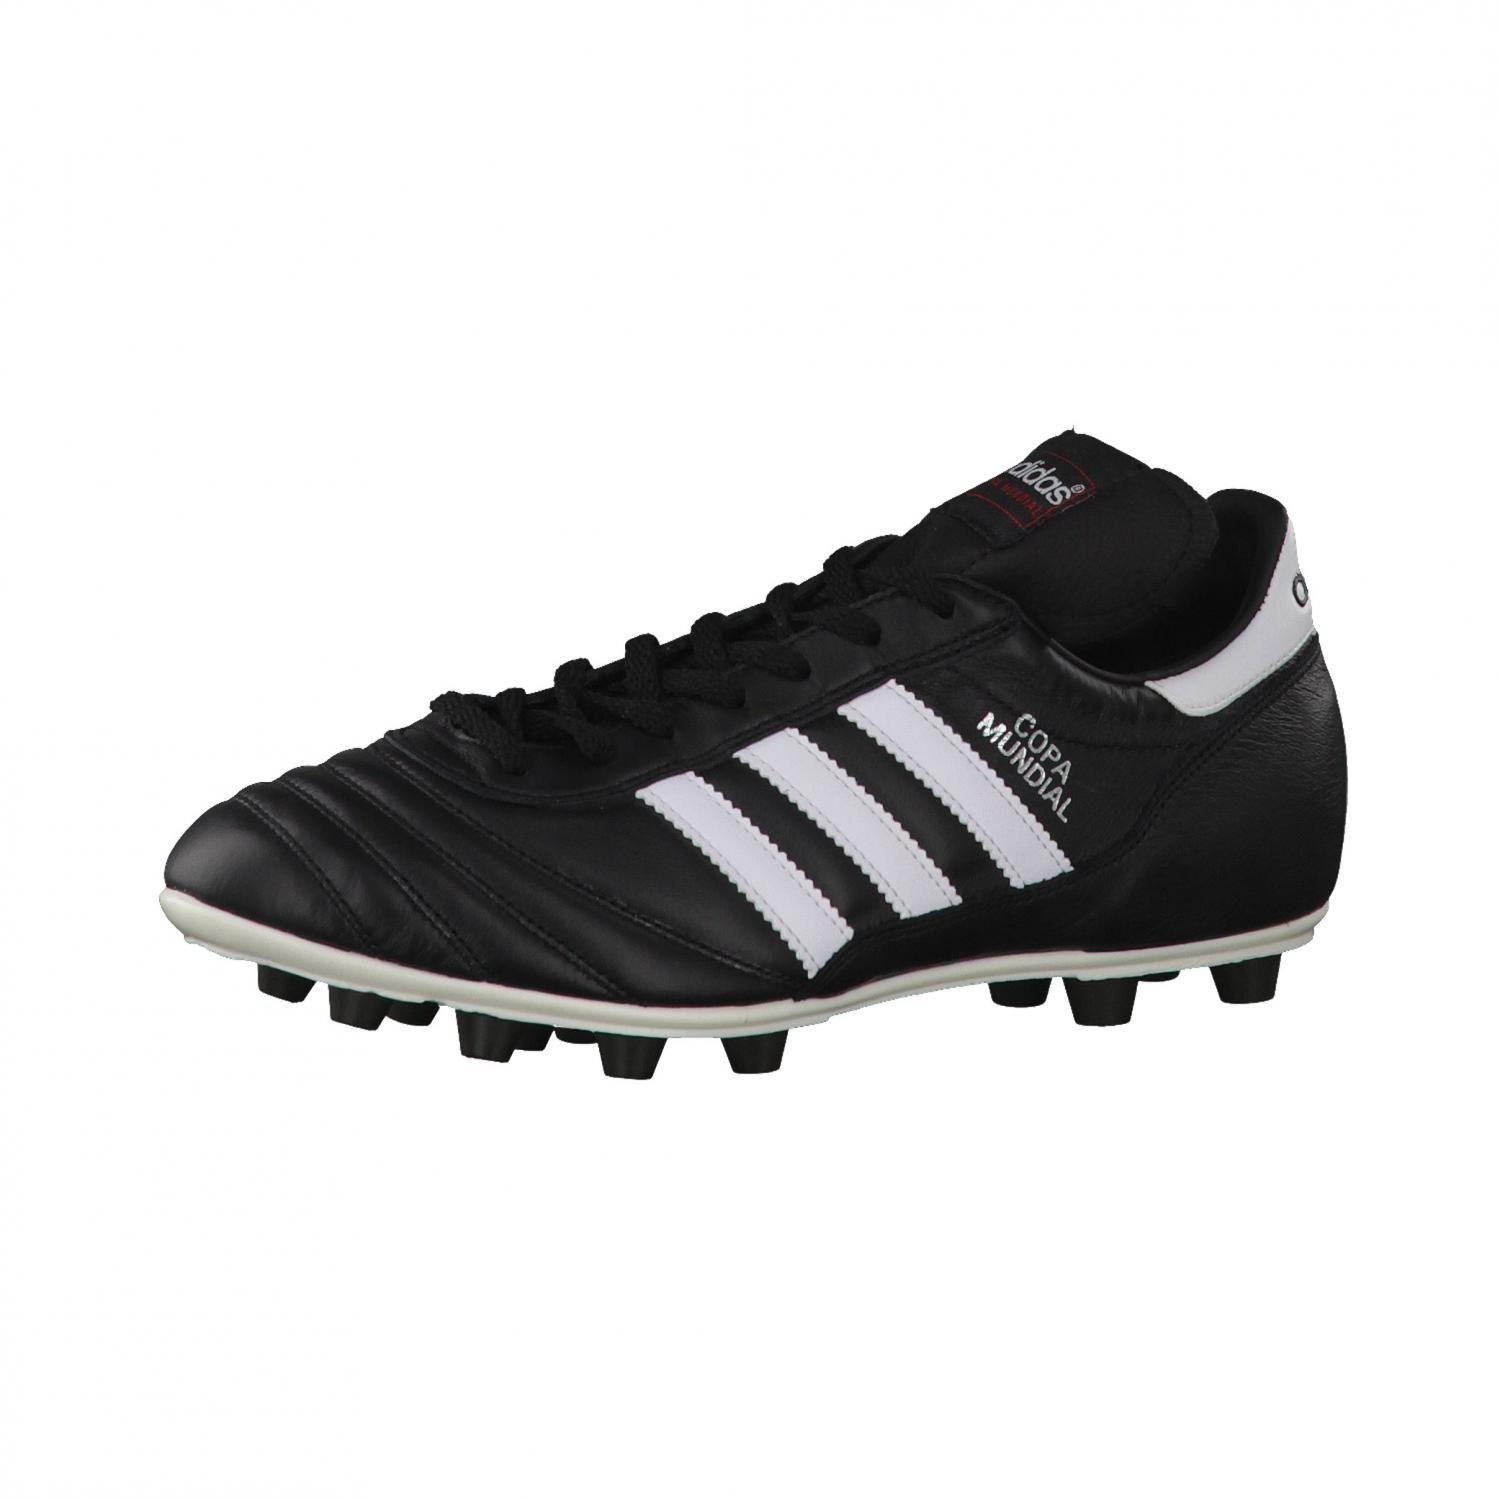 copa mundial football boots